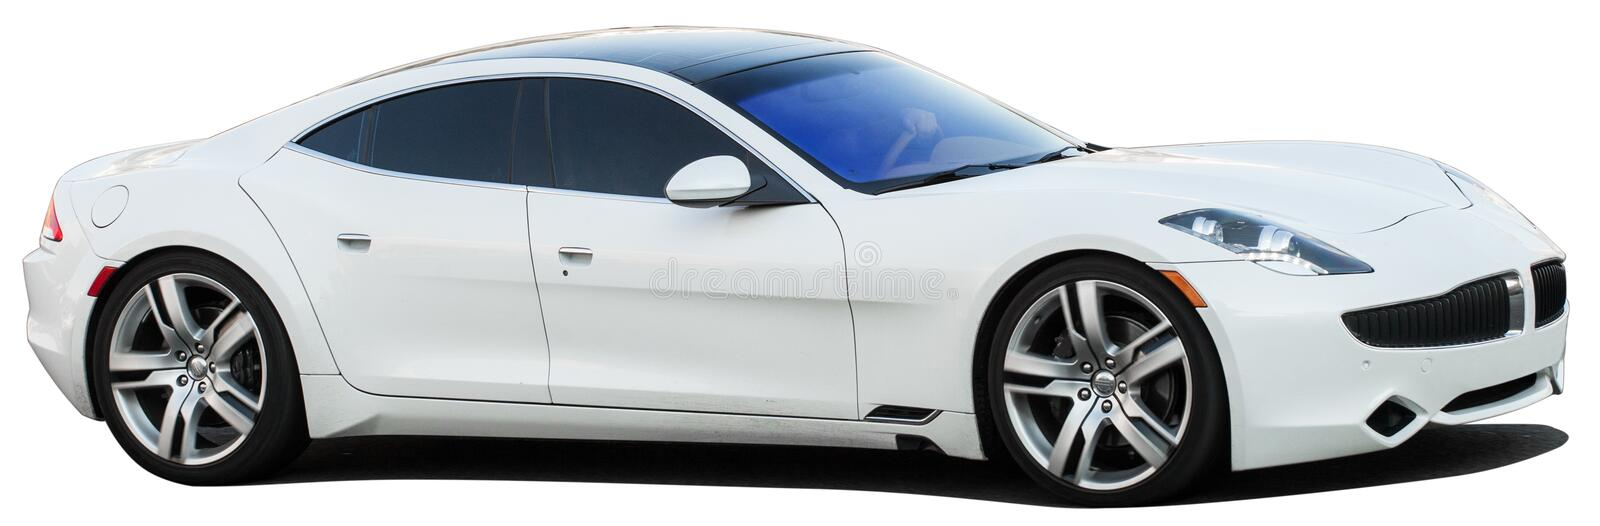 White sports car on a transparent background royalty free stock photos